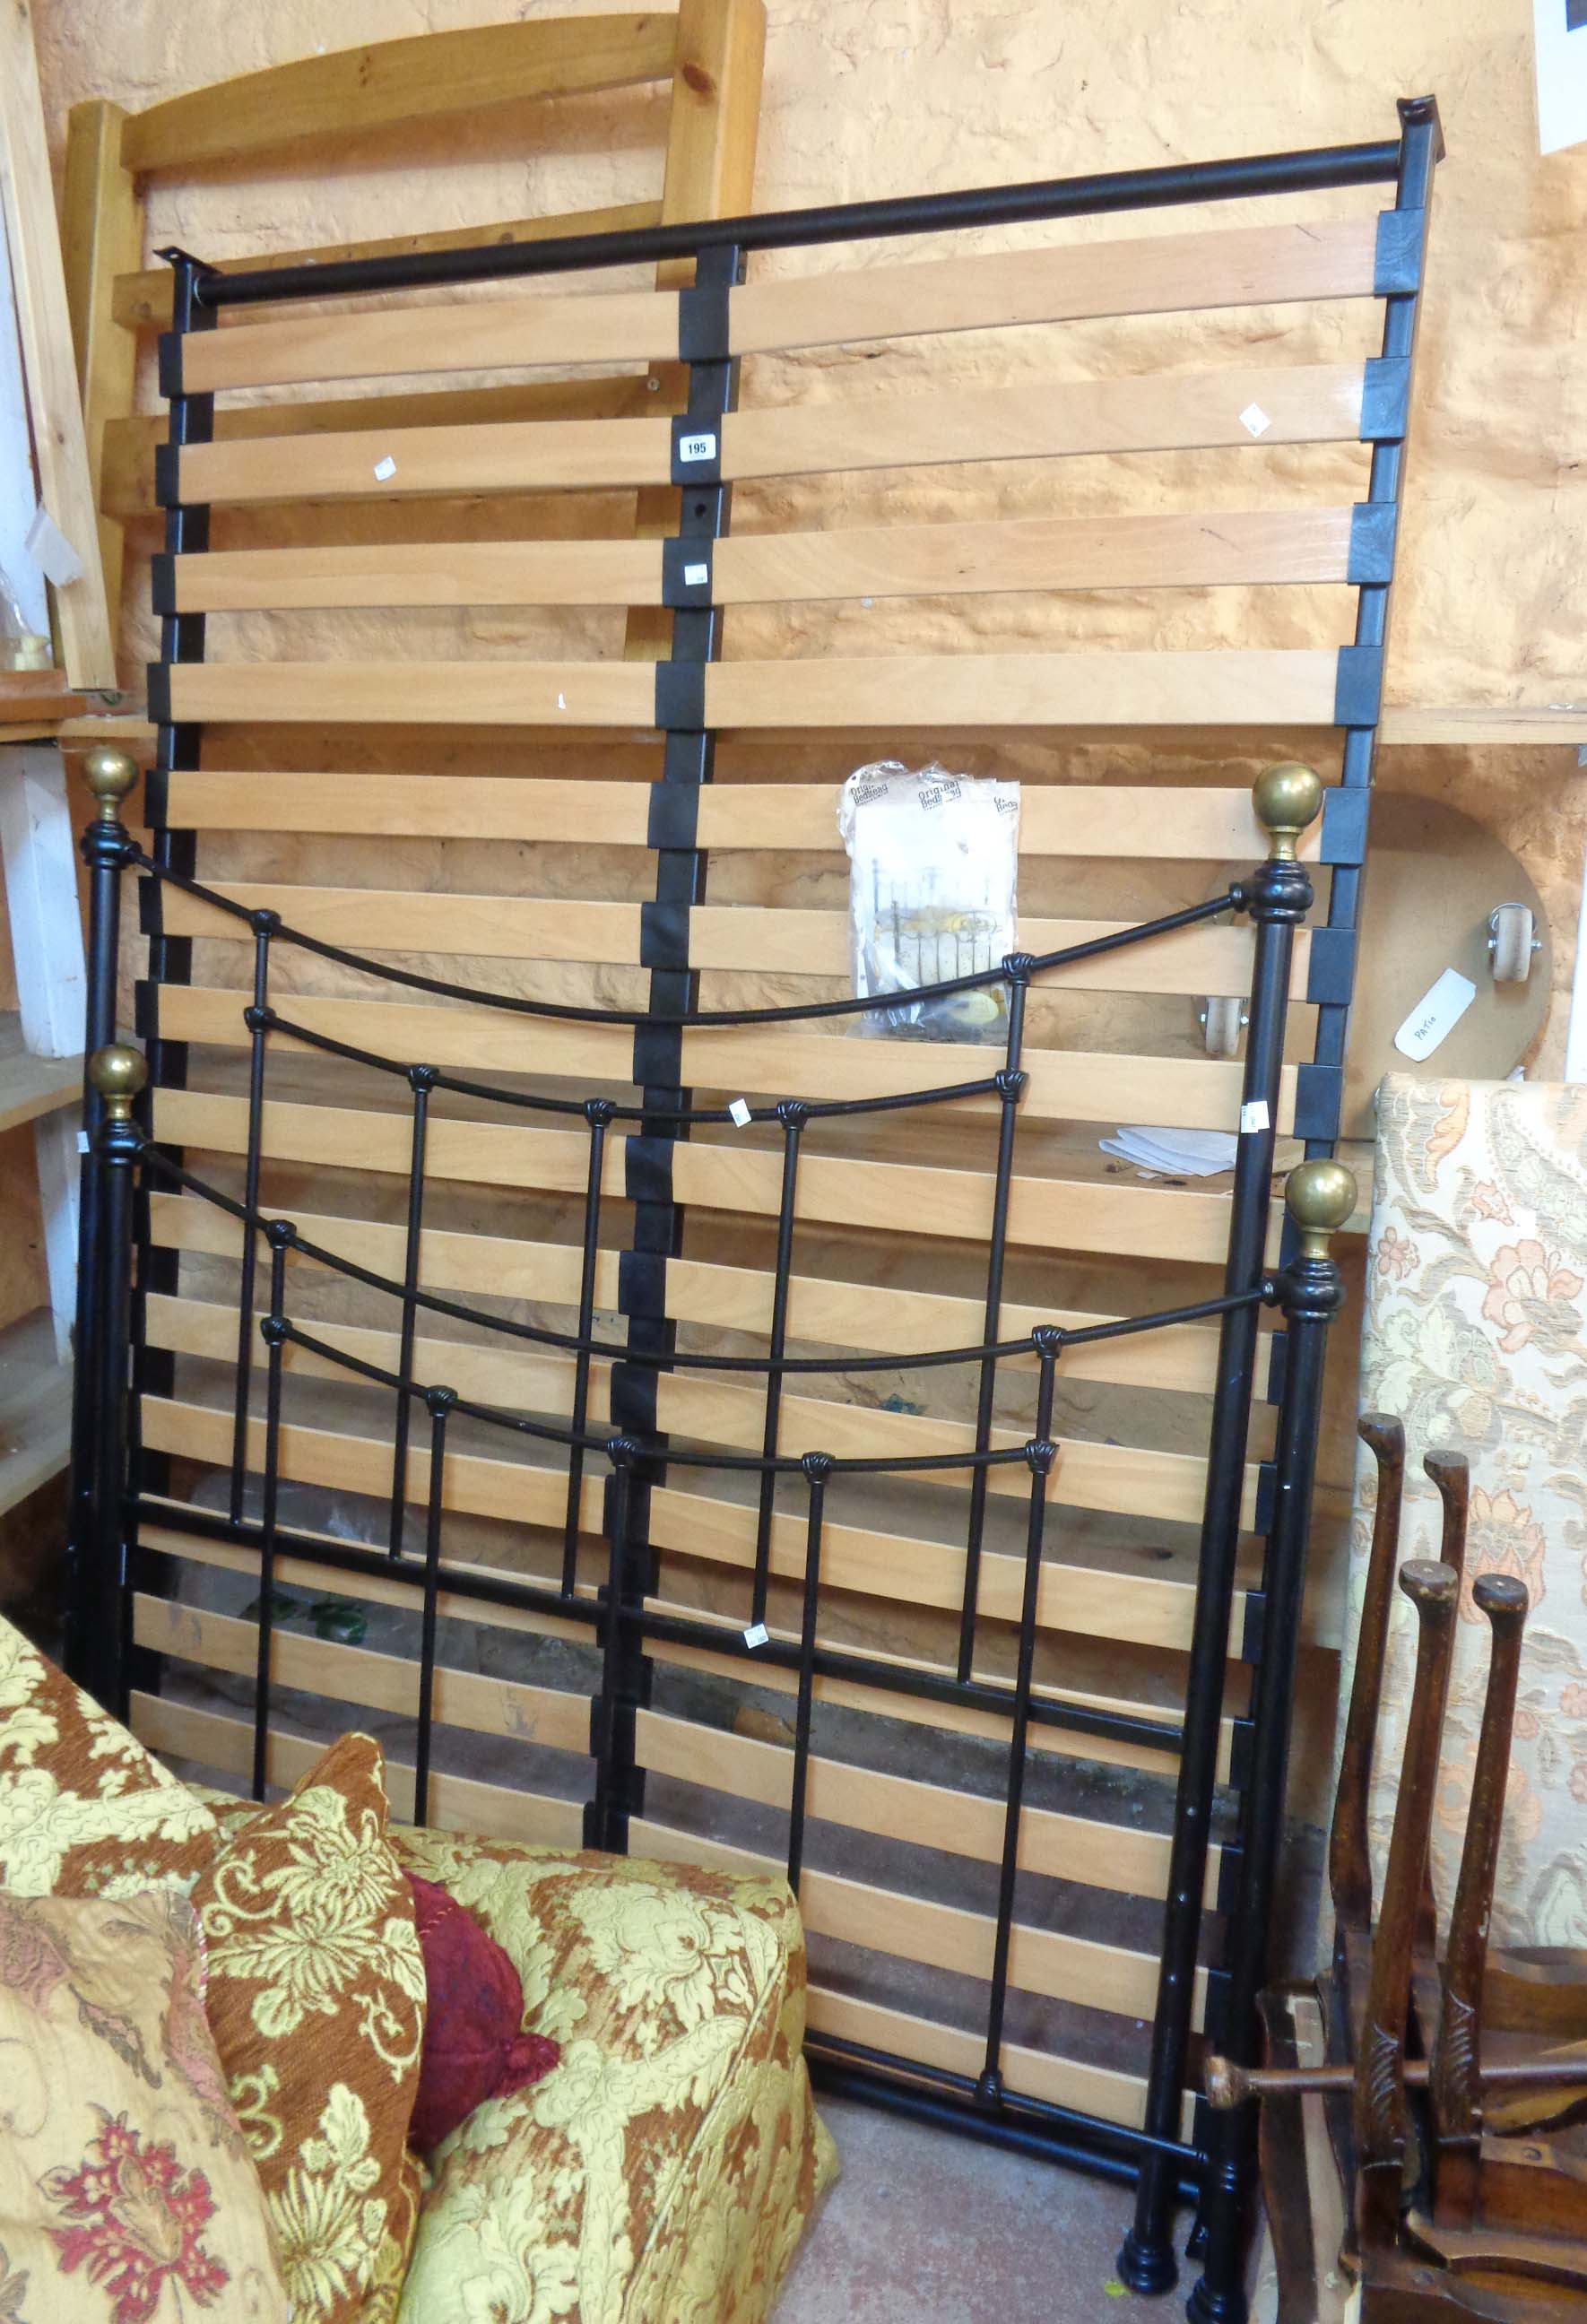 A 1.37m Virginia model reproduction Victorian style double bestead by The Original Bedstead Company